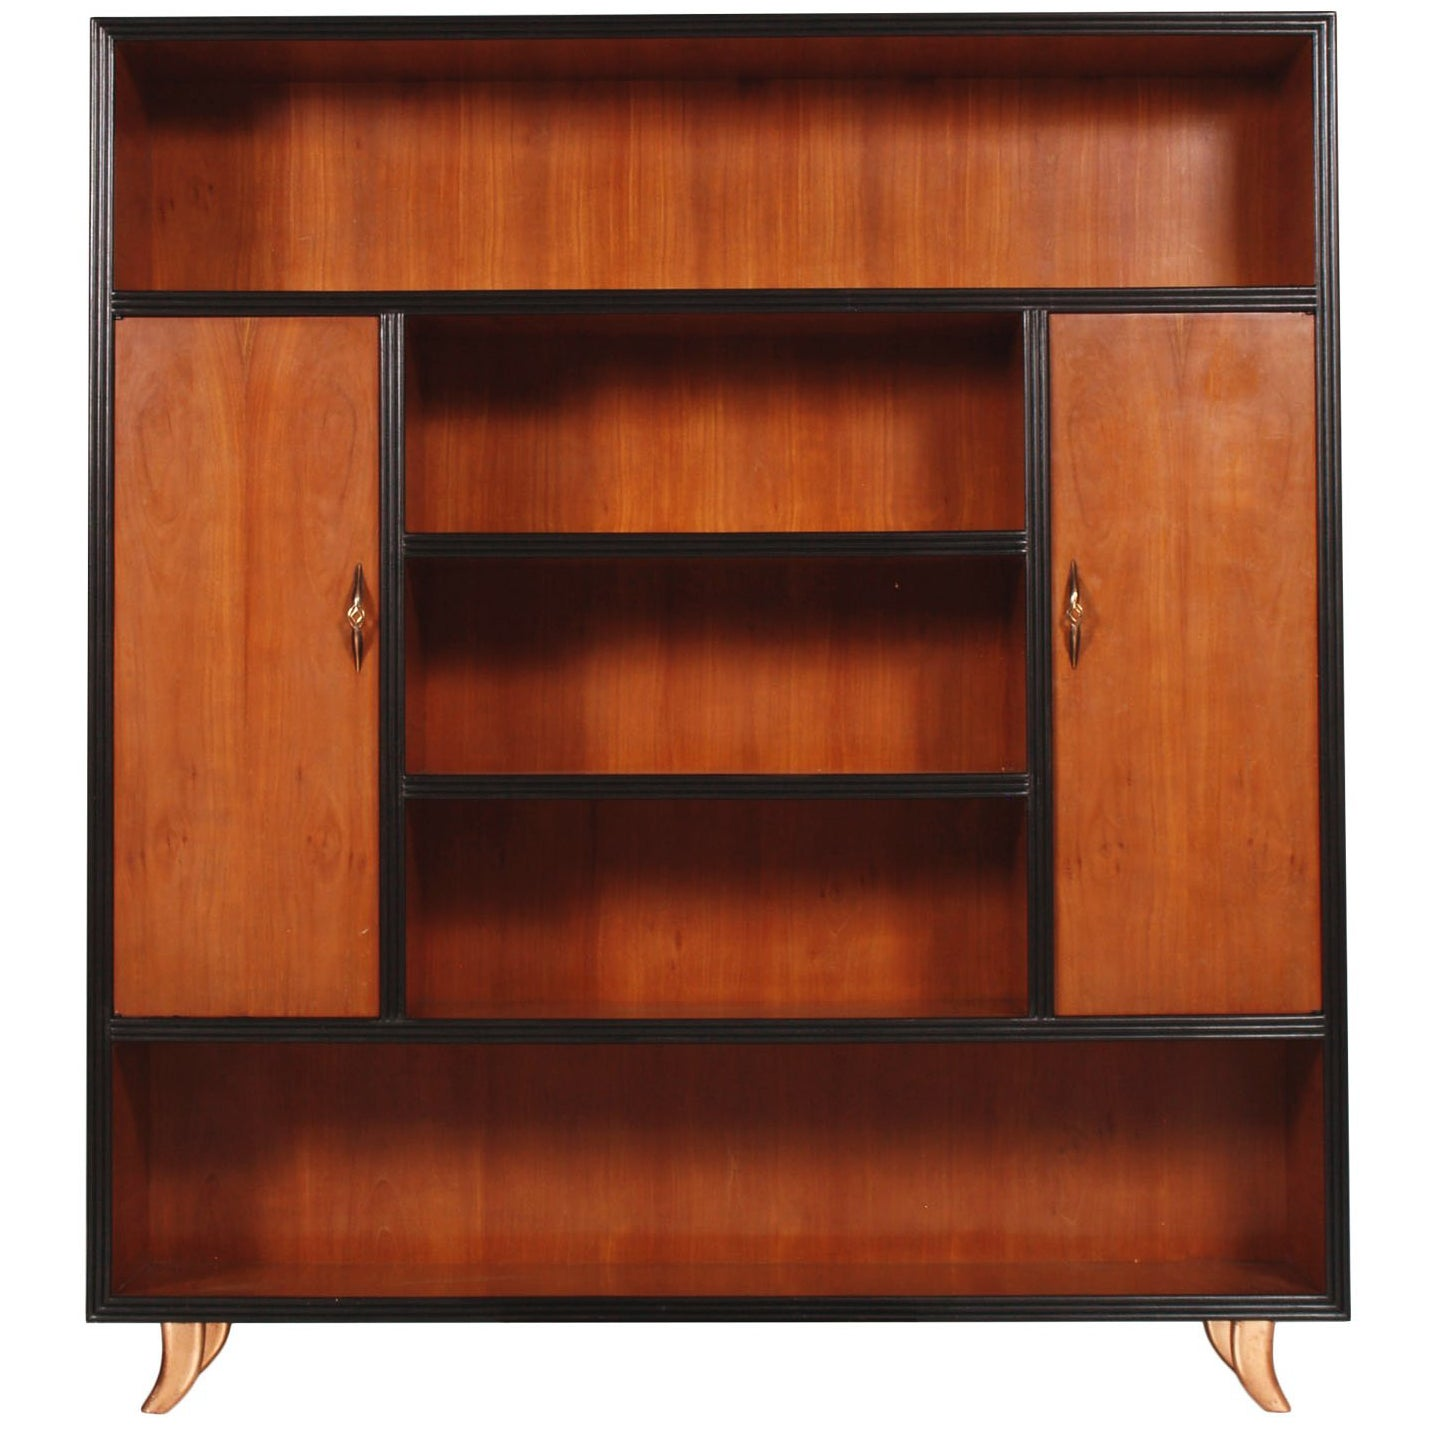 Mid Century Modern Bookcase Cabinet Cherry Wood By Guglielmo Urlich For